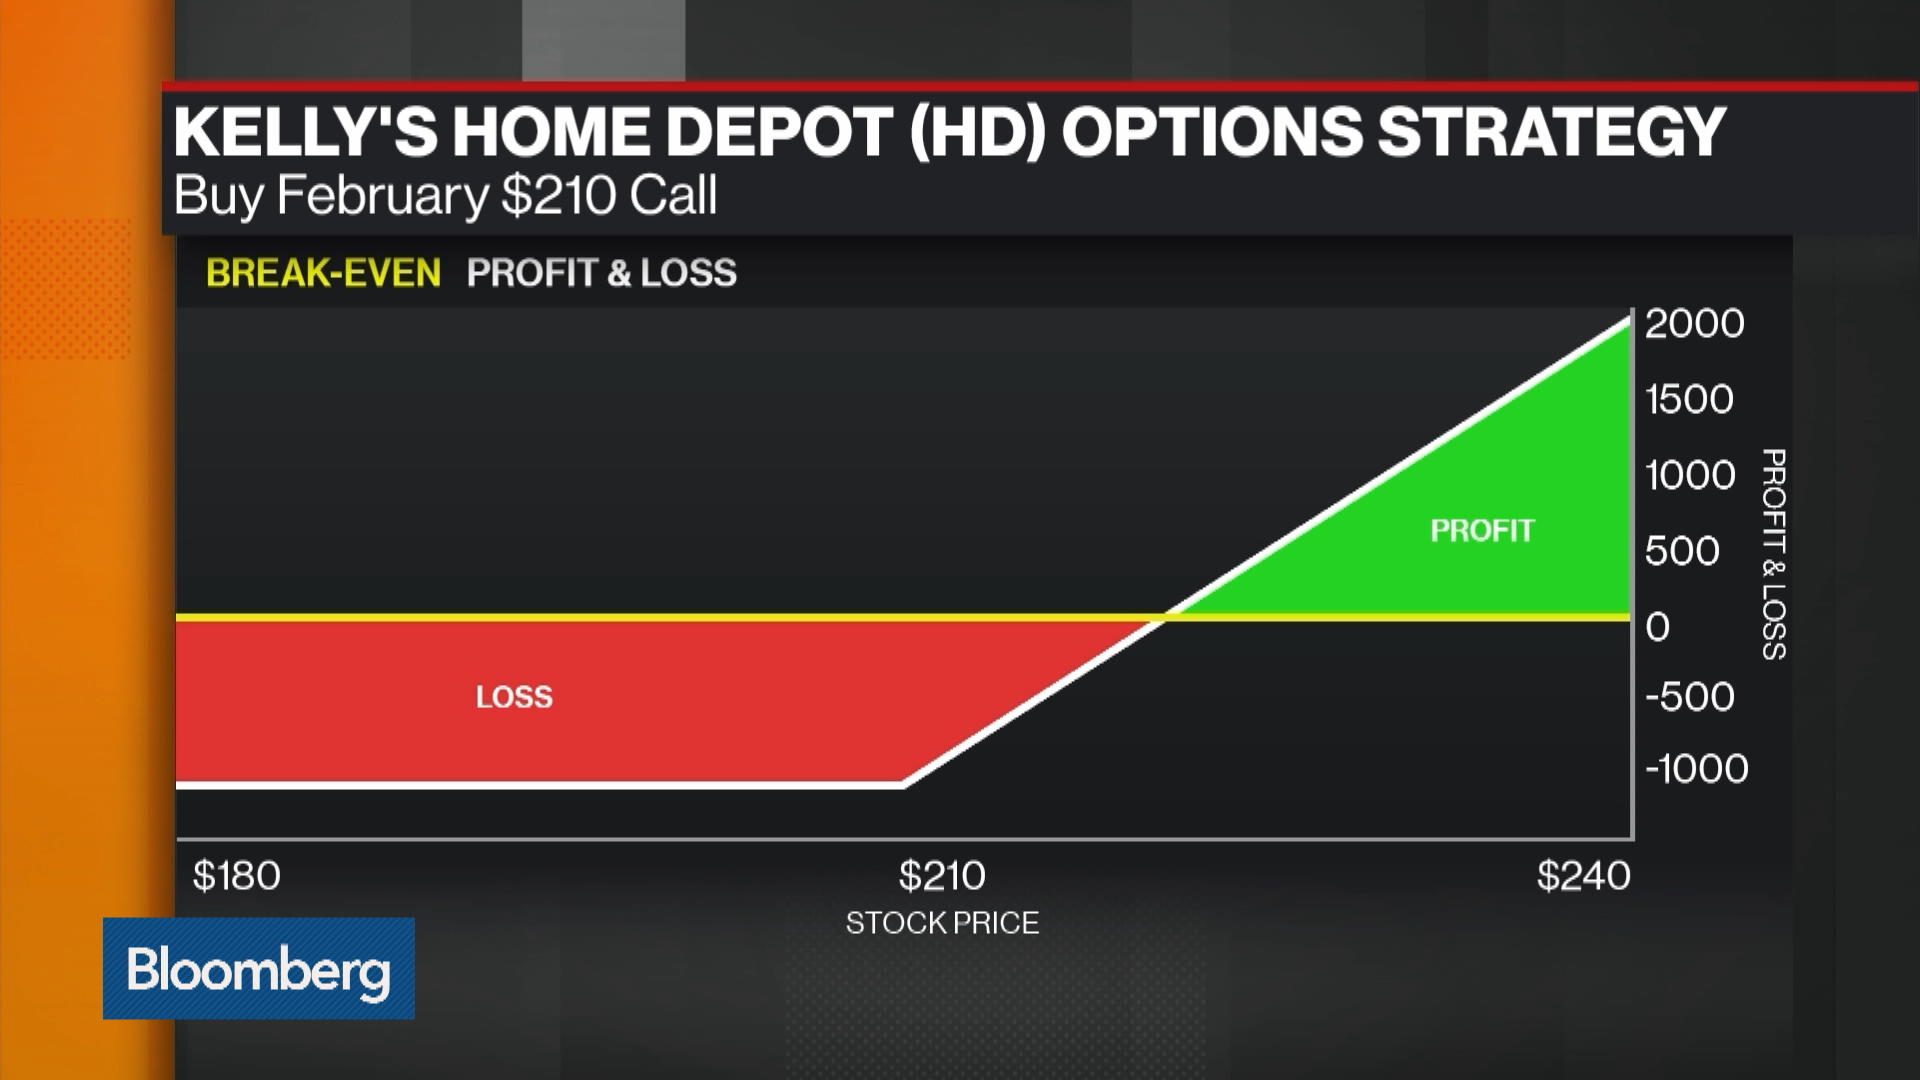 How to Play Home Depot in the Current Retail Environment